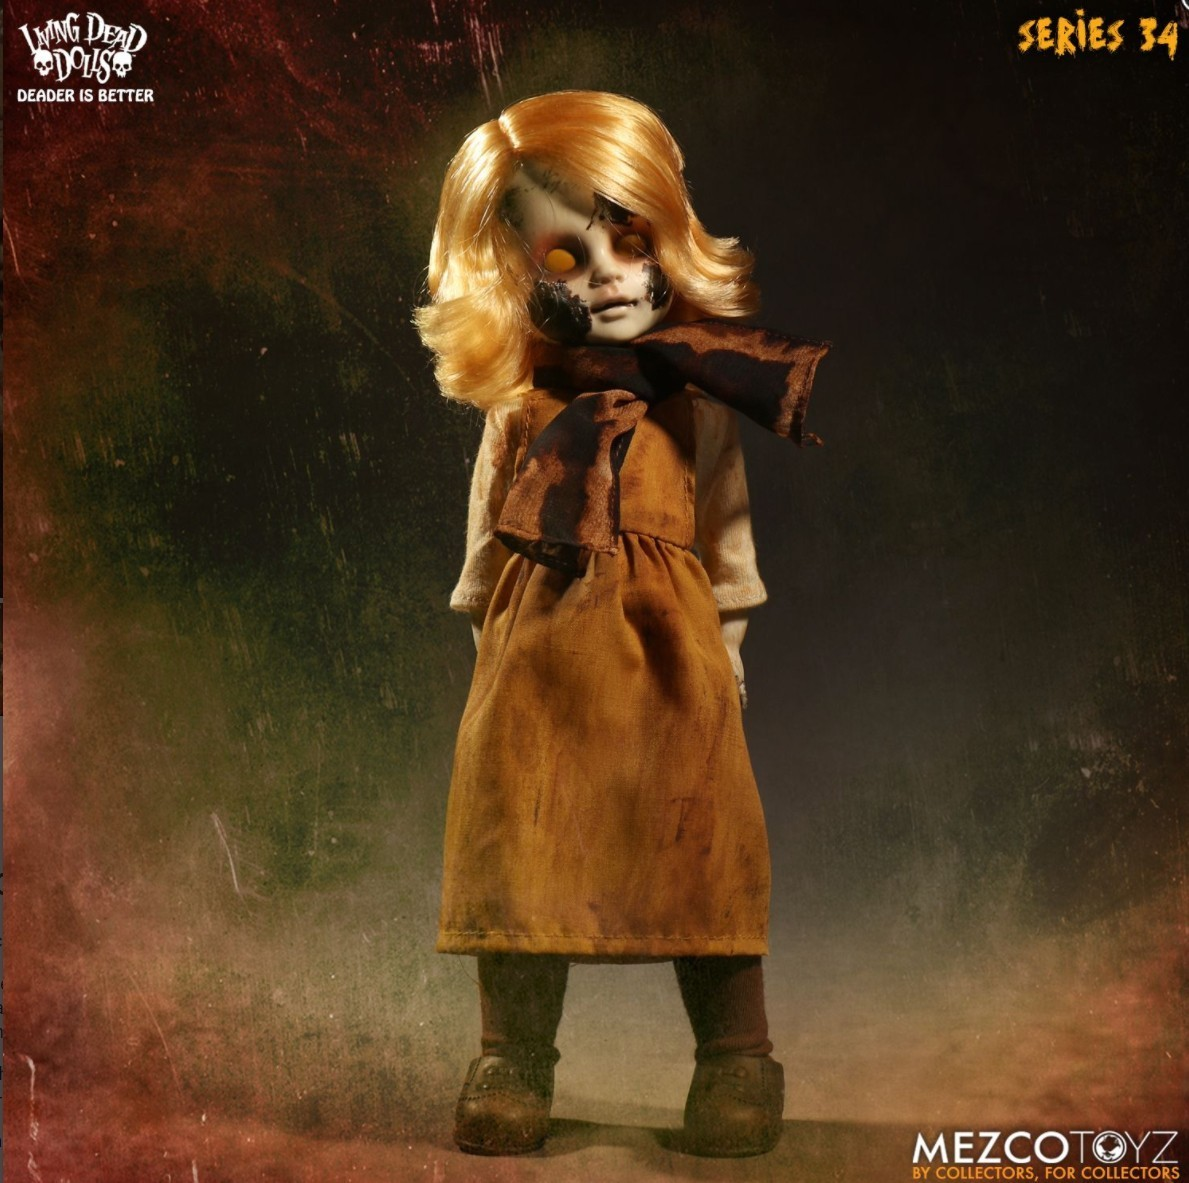 Living Dead Doll - Series 34 - Don't Turn Out the Lights - Canary